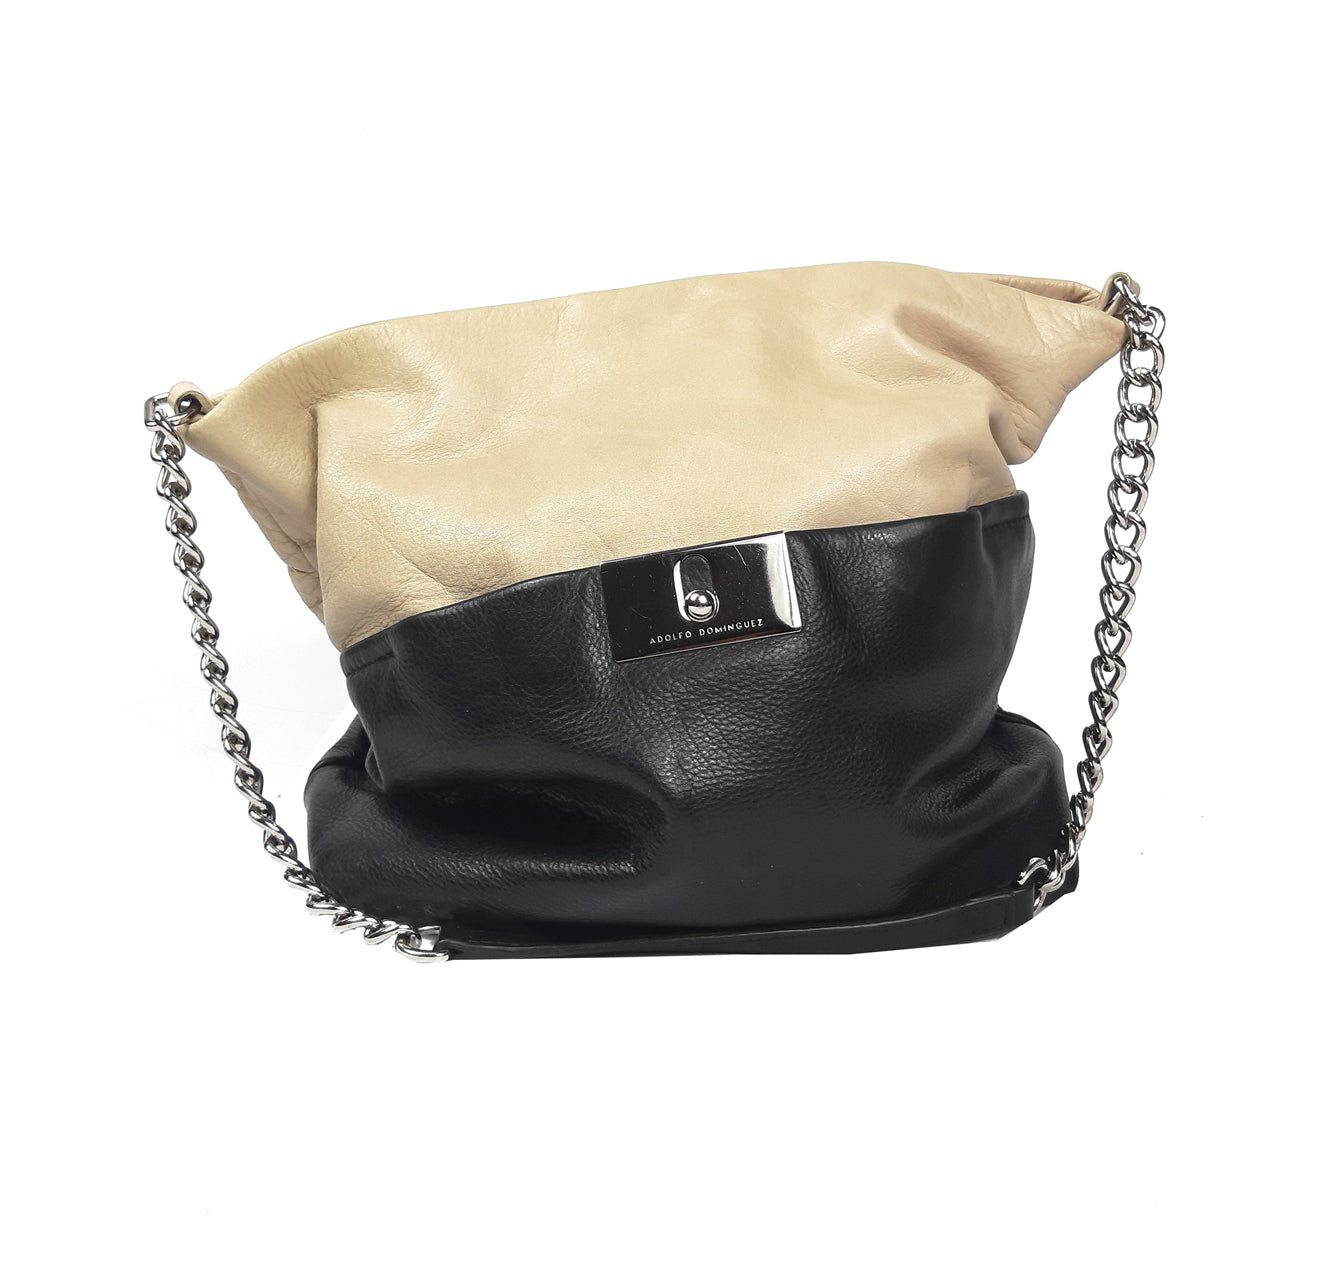 ADOLFO DOMINGUEZ Color Block (Black/Beige) Sack Bag with Silver Hardware